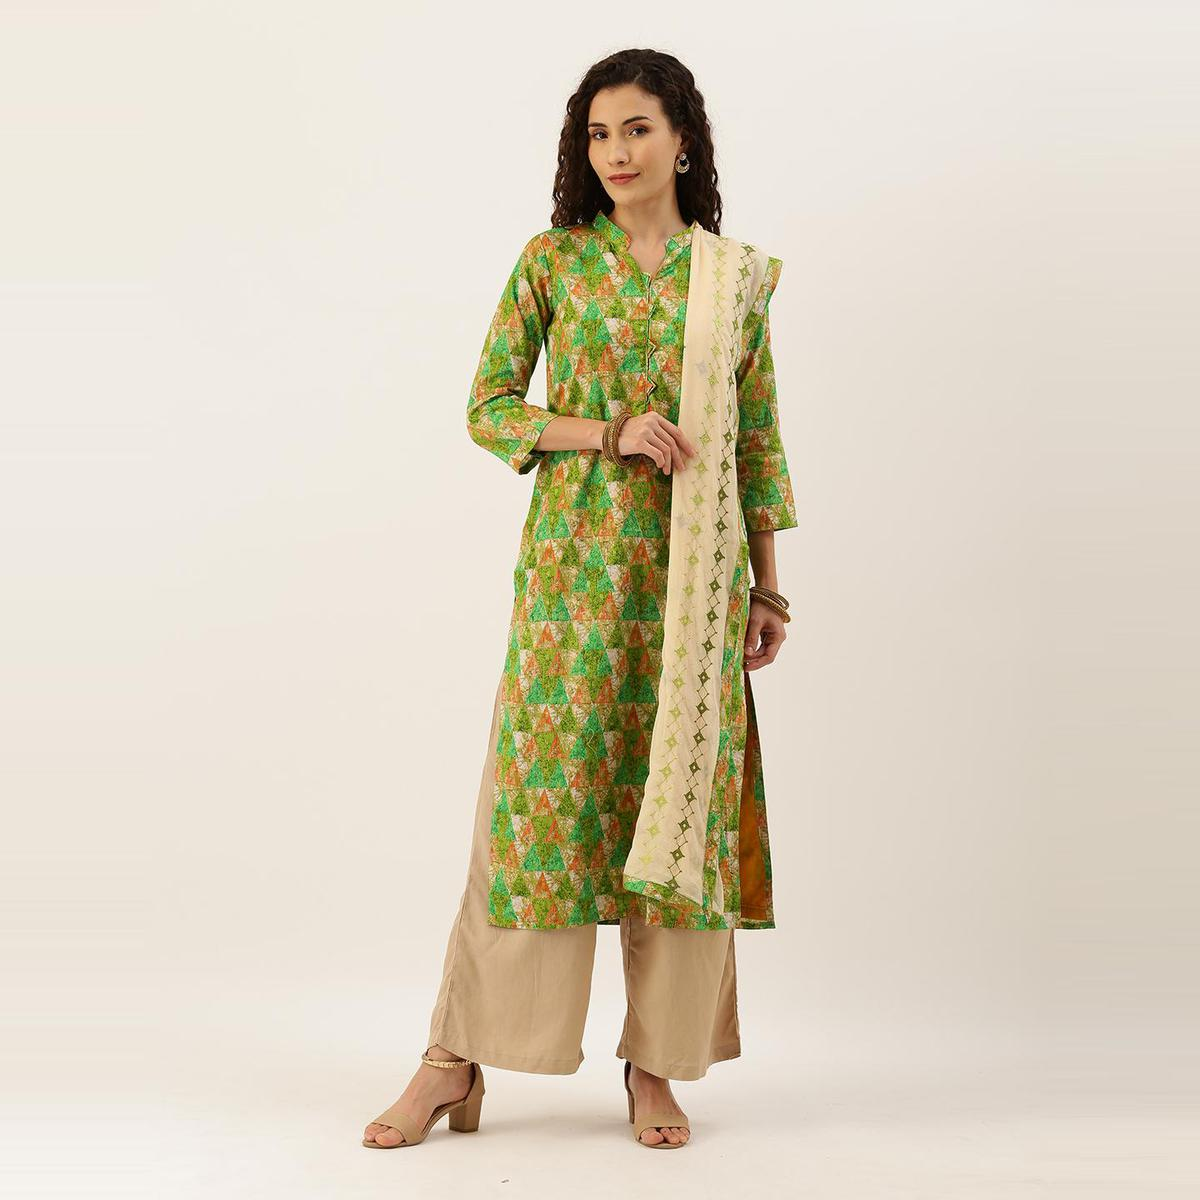 Kvsfab - Women Green Casual Wear Printed Unstitched Dress Material